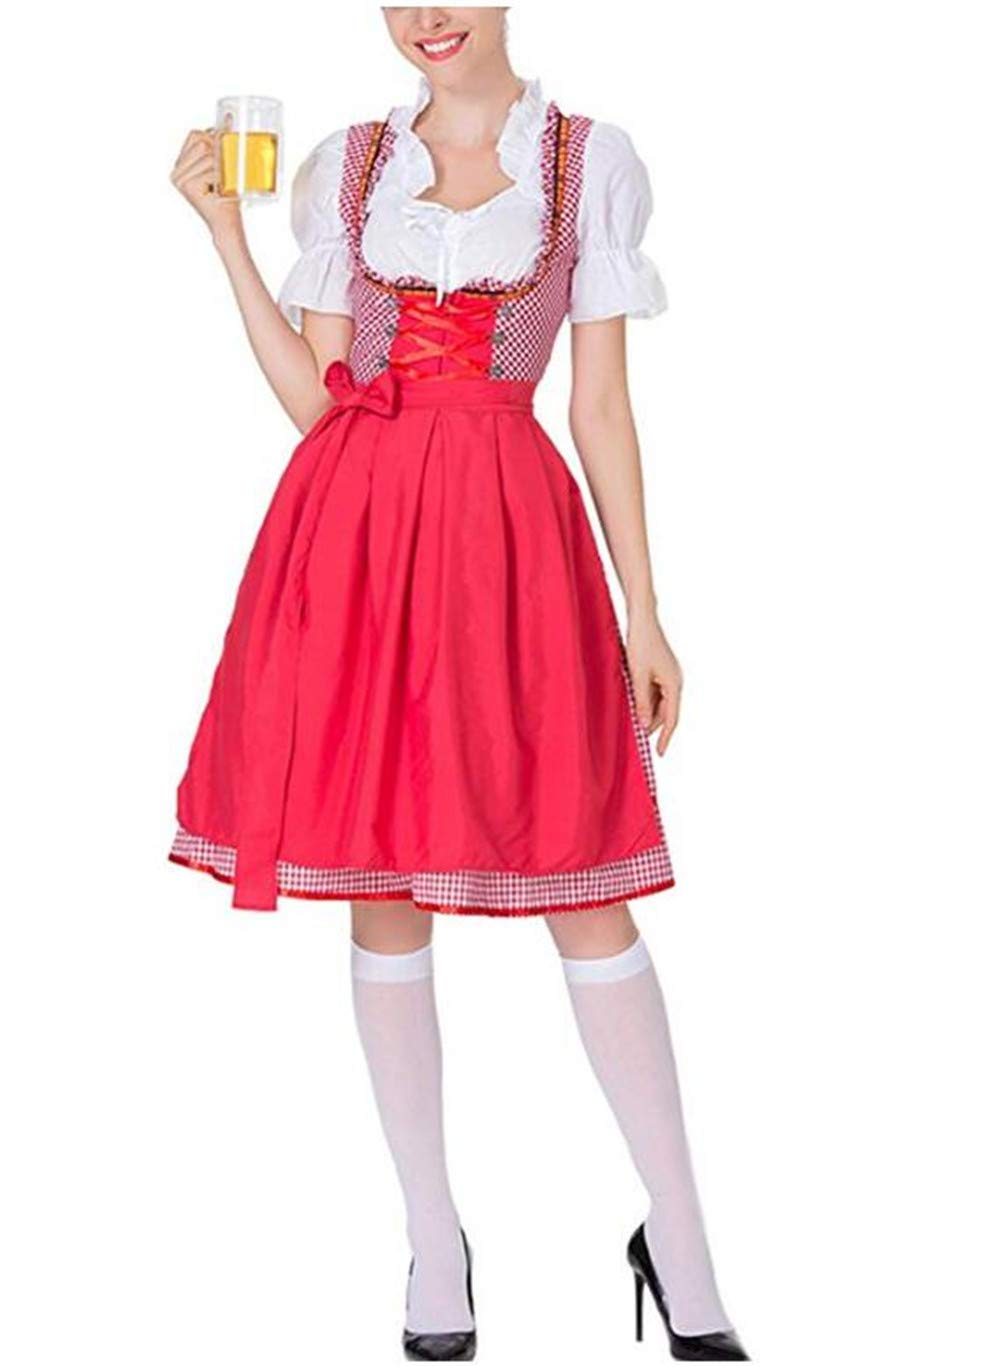 Women's German Dirndl Dress Costumes for Bavarian Oktoberfest Carnival Halloween Polyester